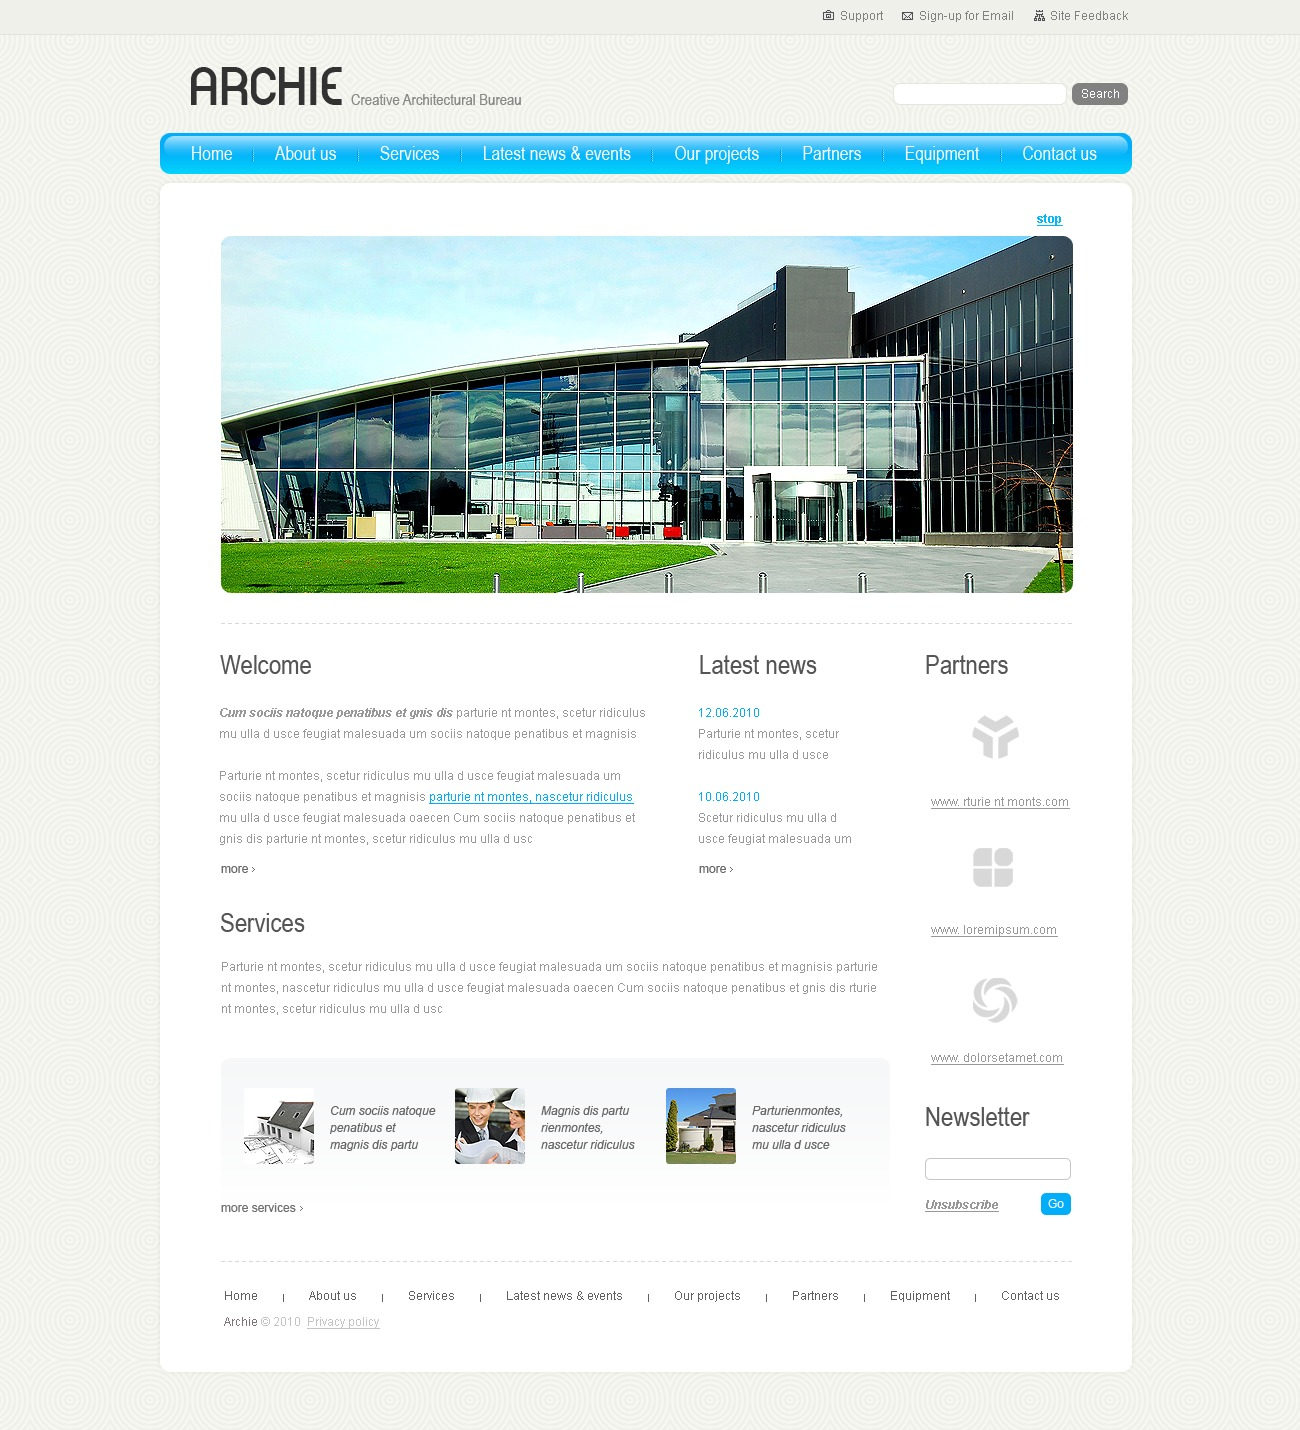 The Archie Architecture Company PSD Design 54305, one of the best PSD templates of its kind (architecture, flash 8, wide), also known as archie architecture company PSD template, buildings PSD template, technology PSD template, innovation PSD template, skyscrapers PSD template, projects PSD template, constructions PSD template, houses PSD template, work PSD template, team PSD template, strategy PSD template, services PSD template, support PSD template, planning solutions design PSD template, non-standard PSD template, creative ideas PSD template, catalogue PSD template, windows PSD template, doors PSD template, equipme and related with archie architecture company, buildings, technology, innovation, skyscrapers, projects, constructions, houses, work, team, strategy, services, support, planning solutions design, non-standard, creative ideas, catalogue, windows, doors, equipme, etc.